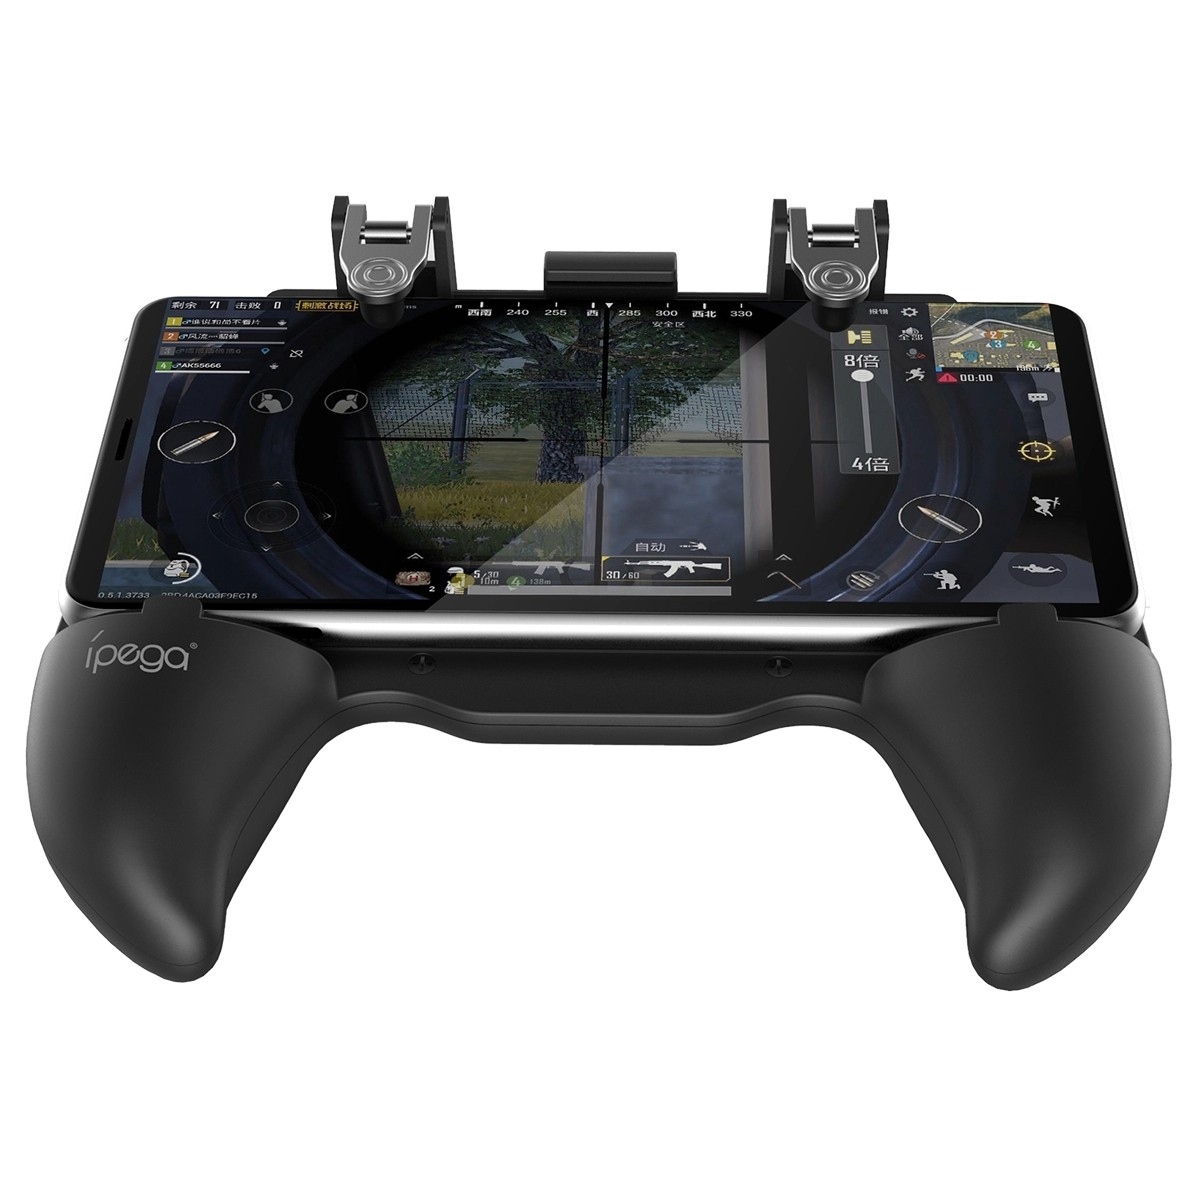 Ipega Pg 9117 Gamepad Design For Fps Pubg Mobile Phone Game Grip (7)